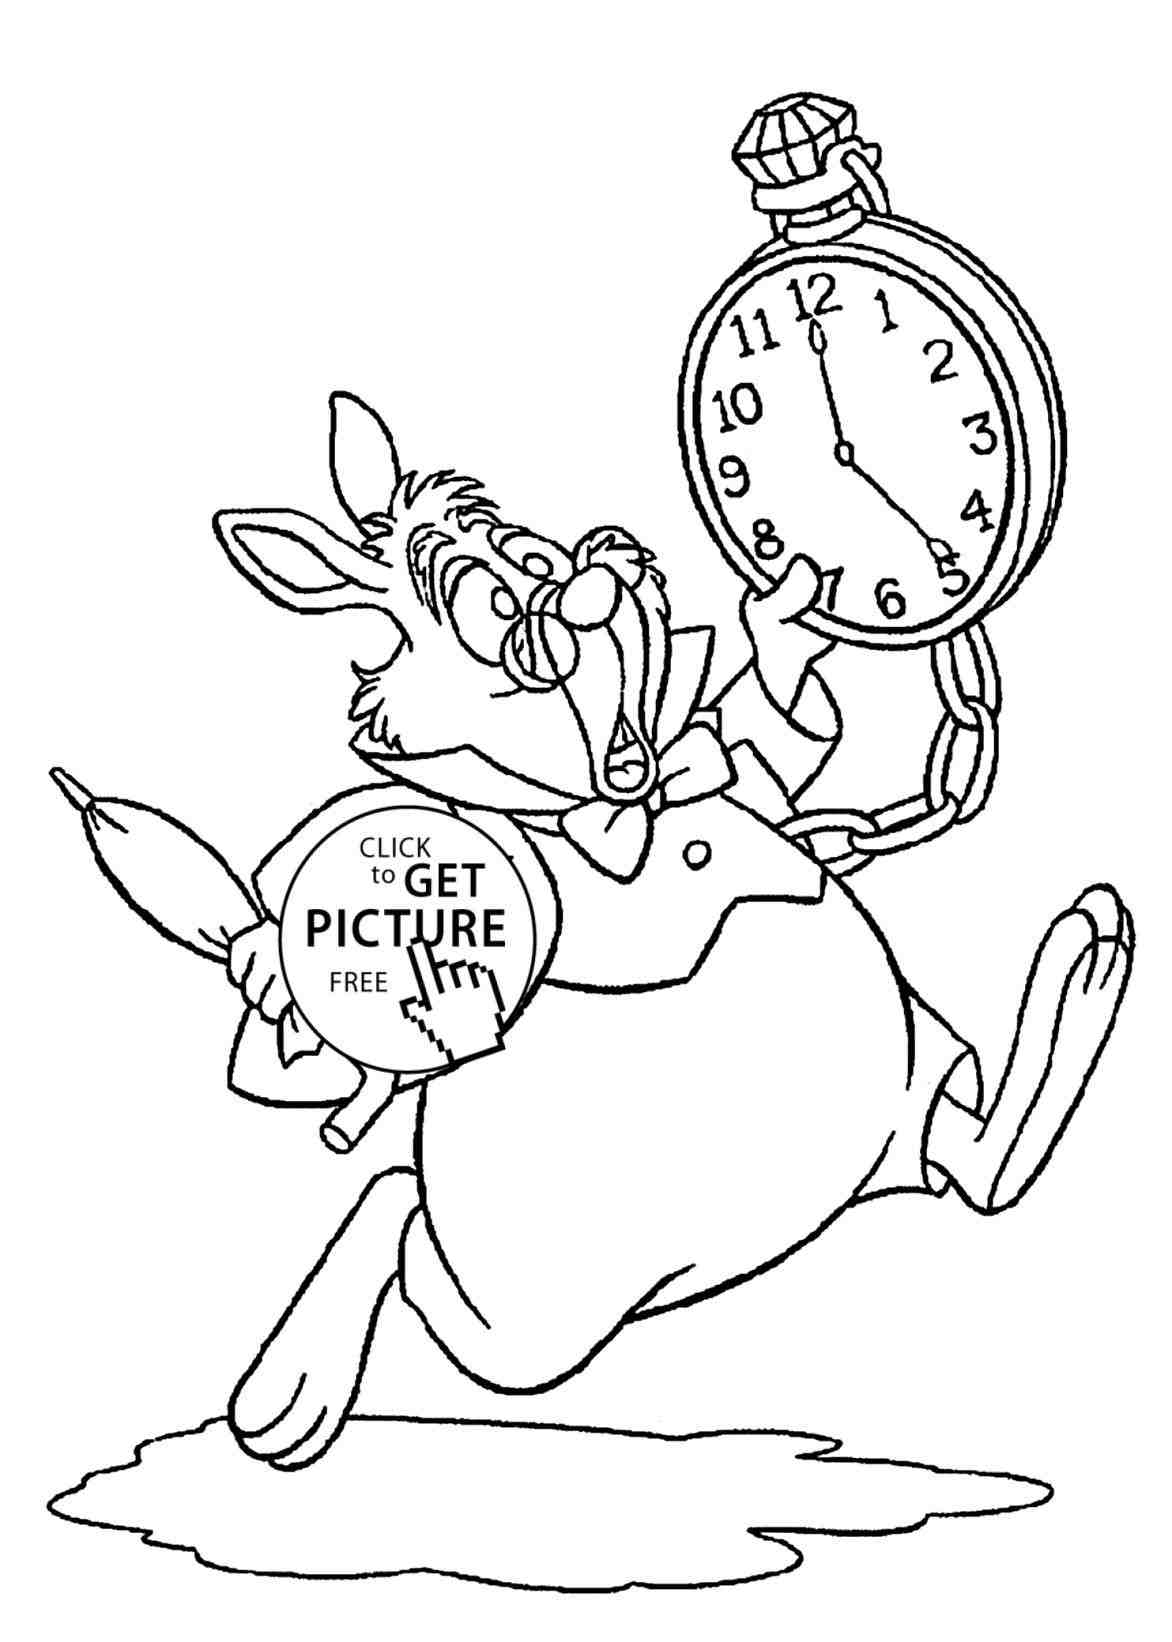 1172x1642 Blog The Mad Hatter Youtube The How To Draw Alice In Wonderland